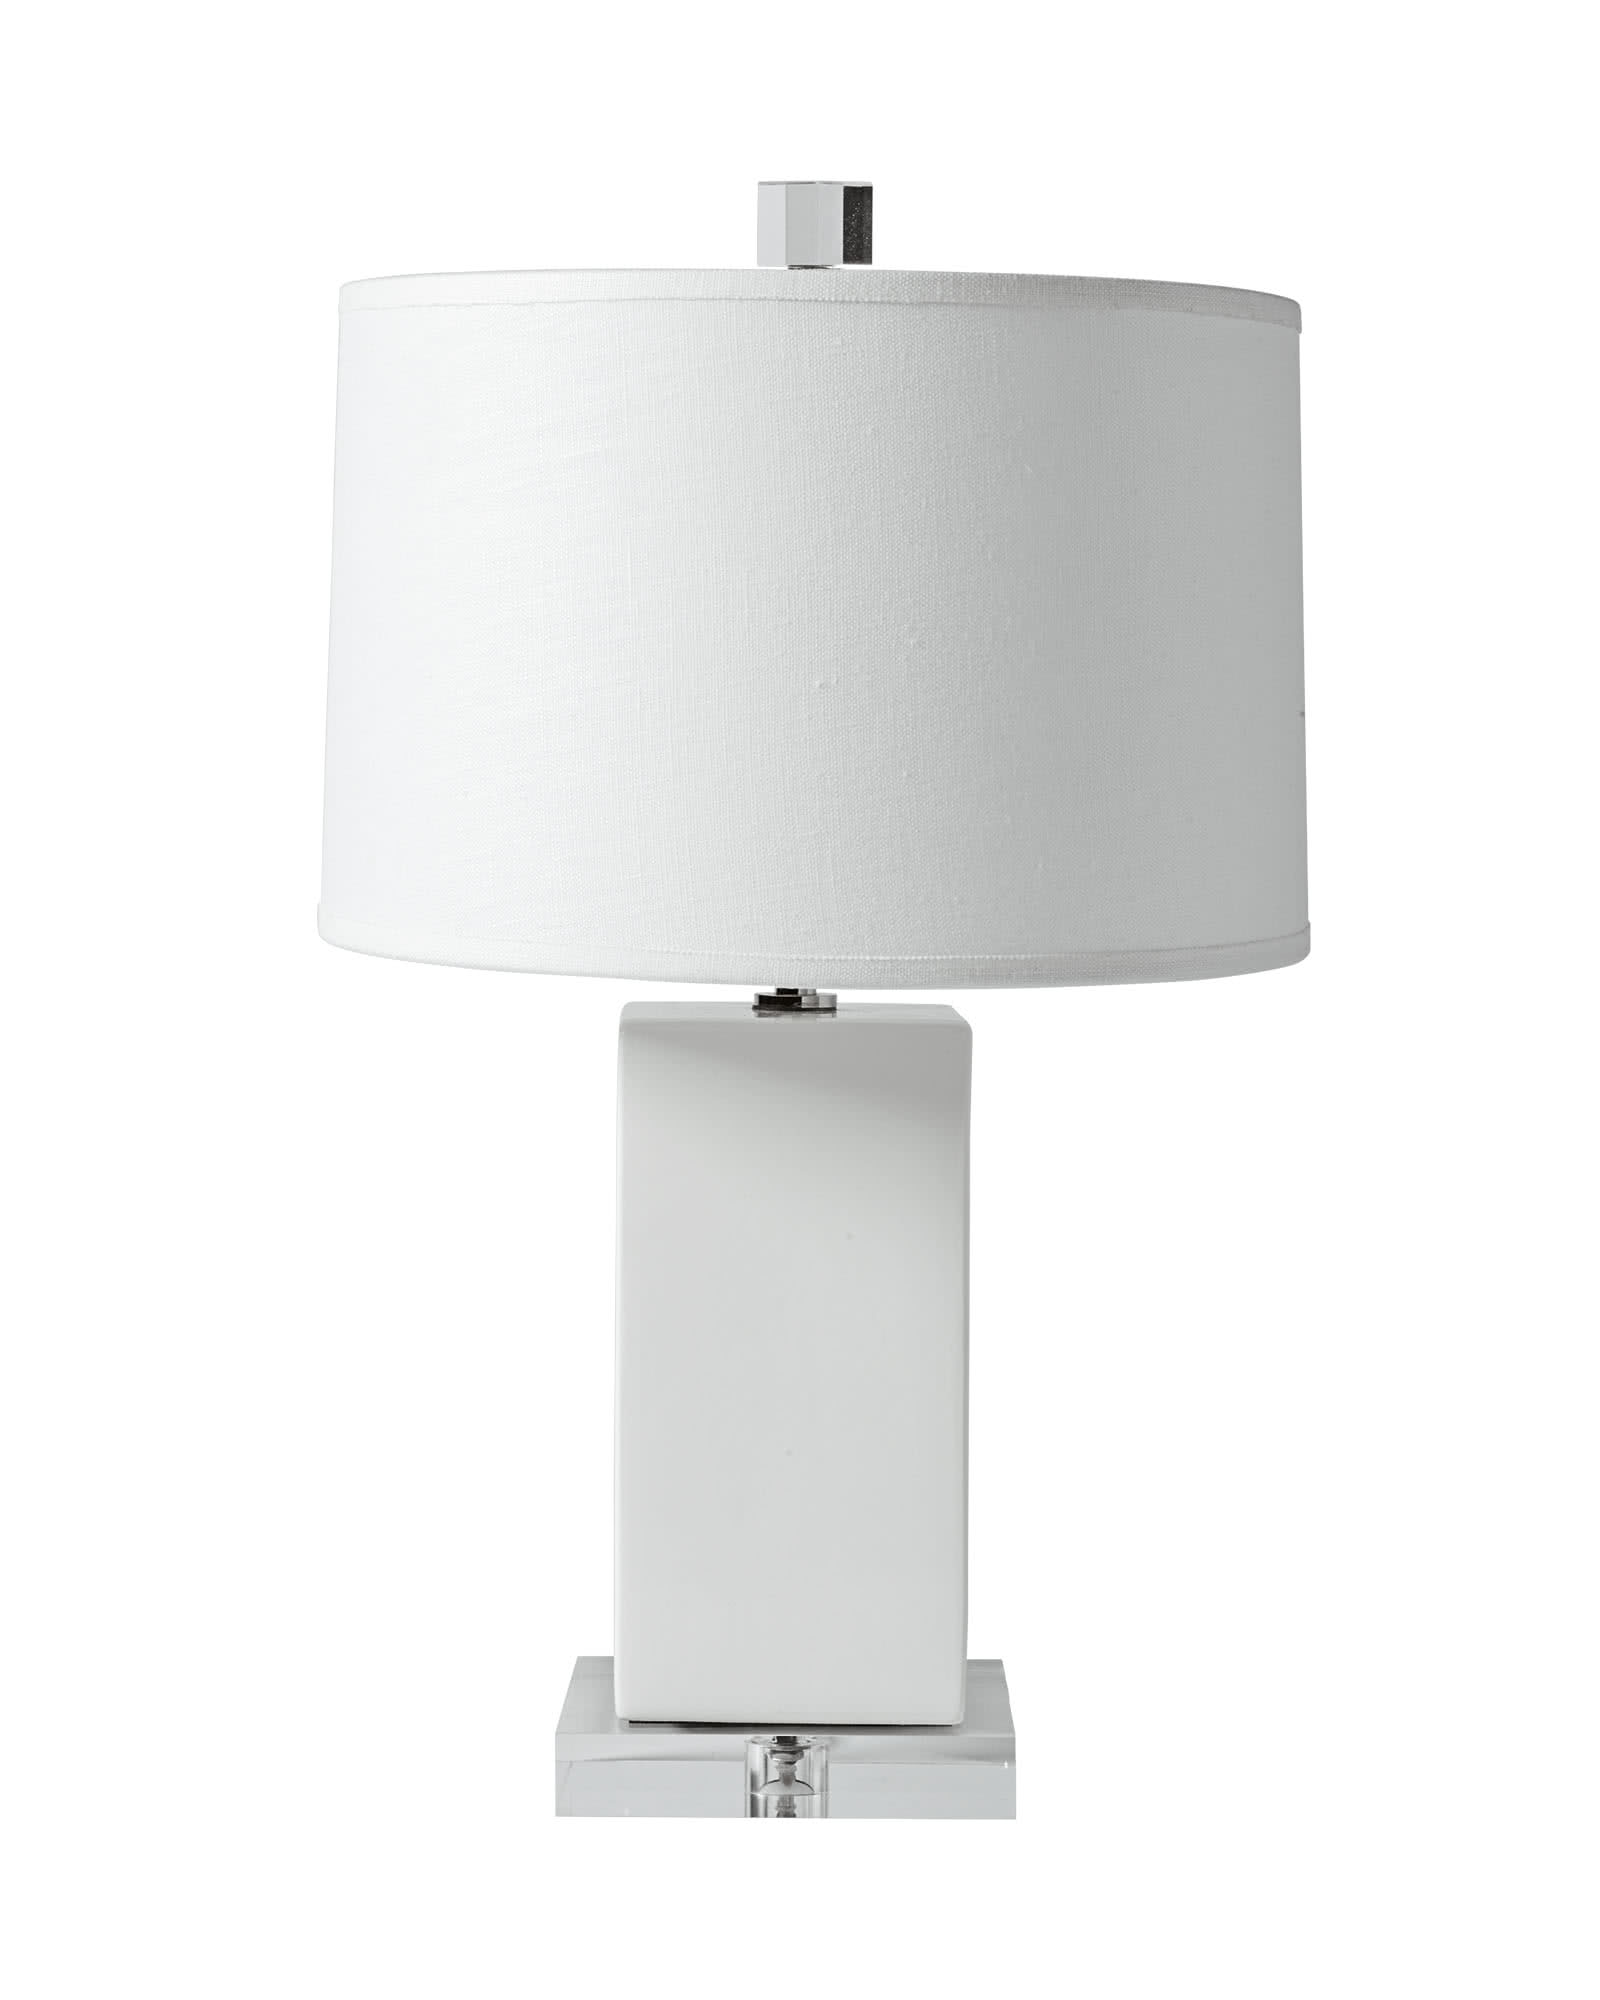 Darby Table Lamp, White